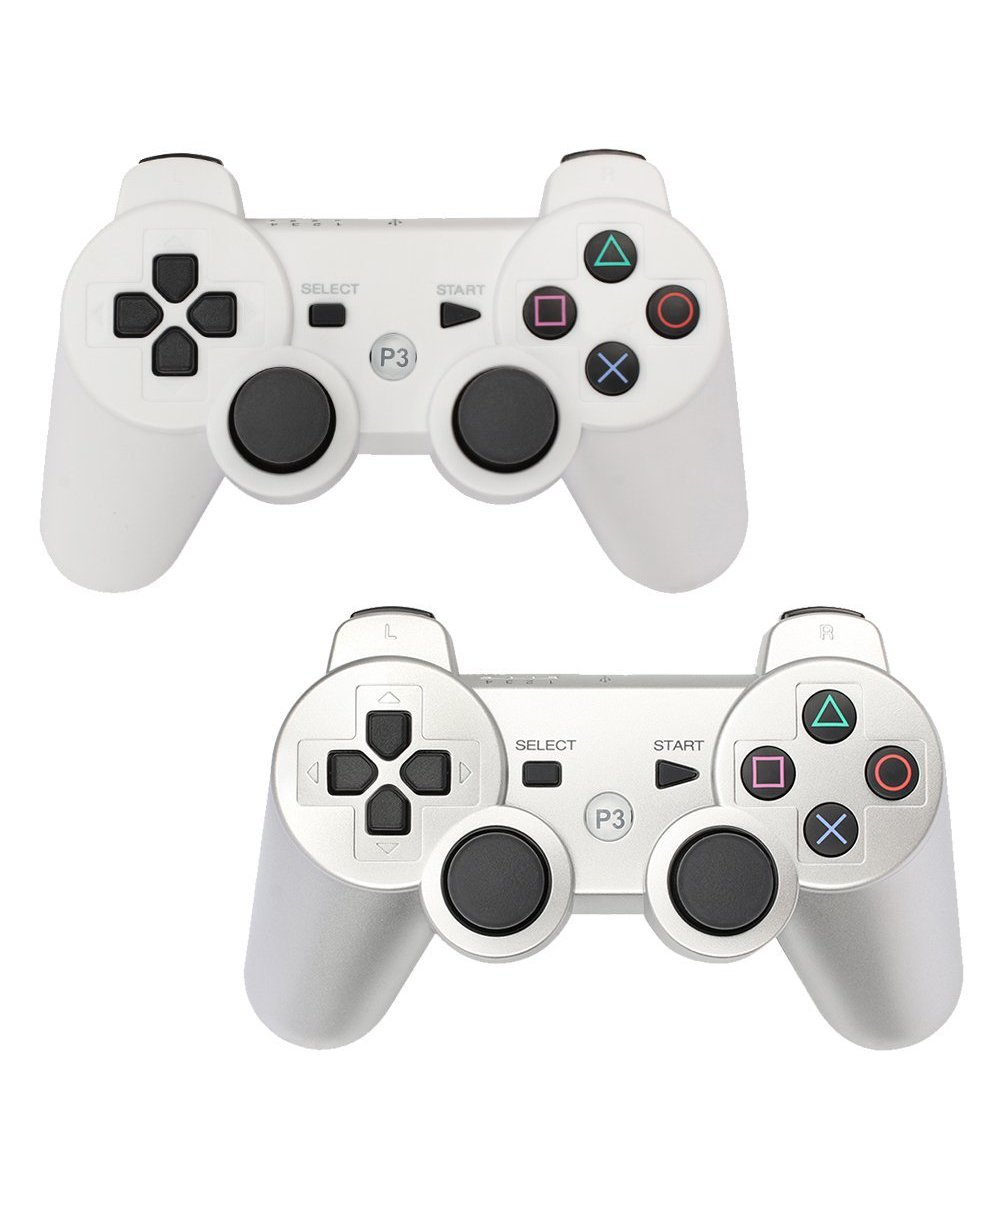 PS3 Controller 2 Pack Wireless Bluetooth Six Axis Controllers Gamepad for PlayStation 3 Dualshock 3 (1White + 1Silver)